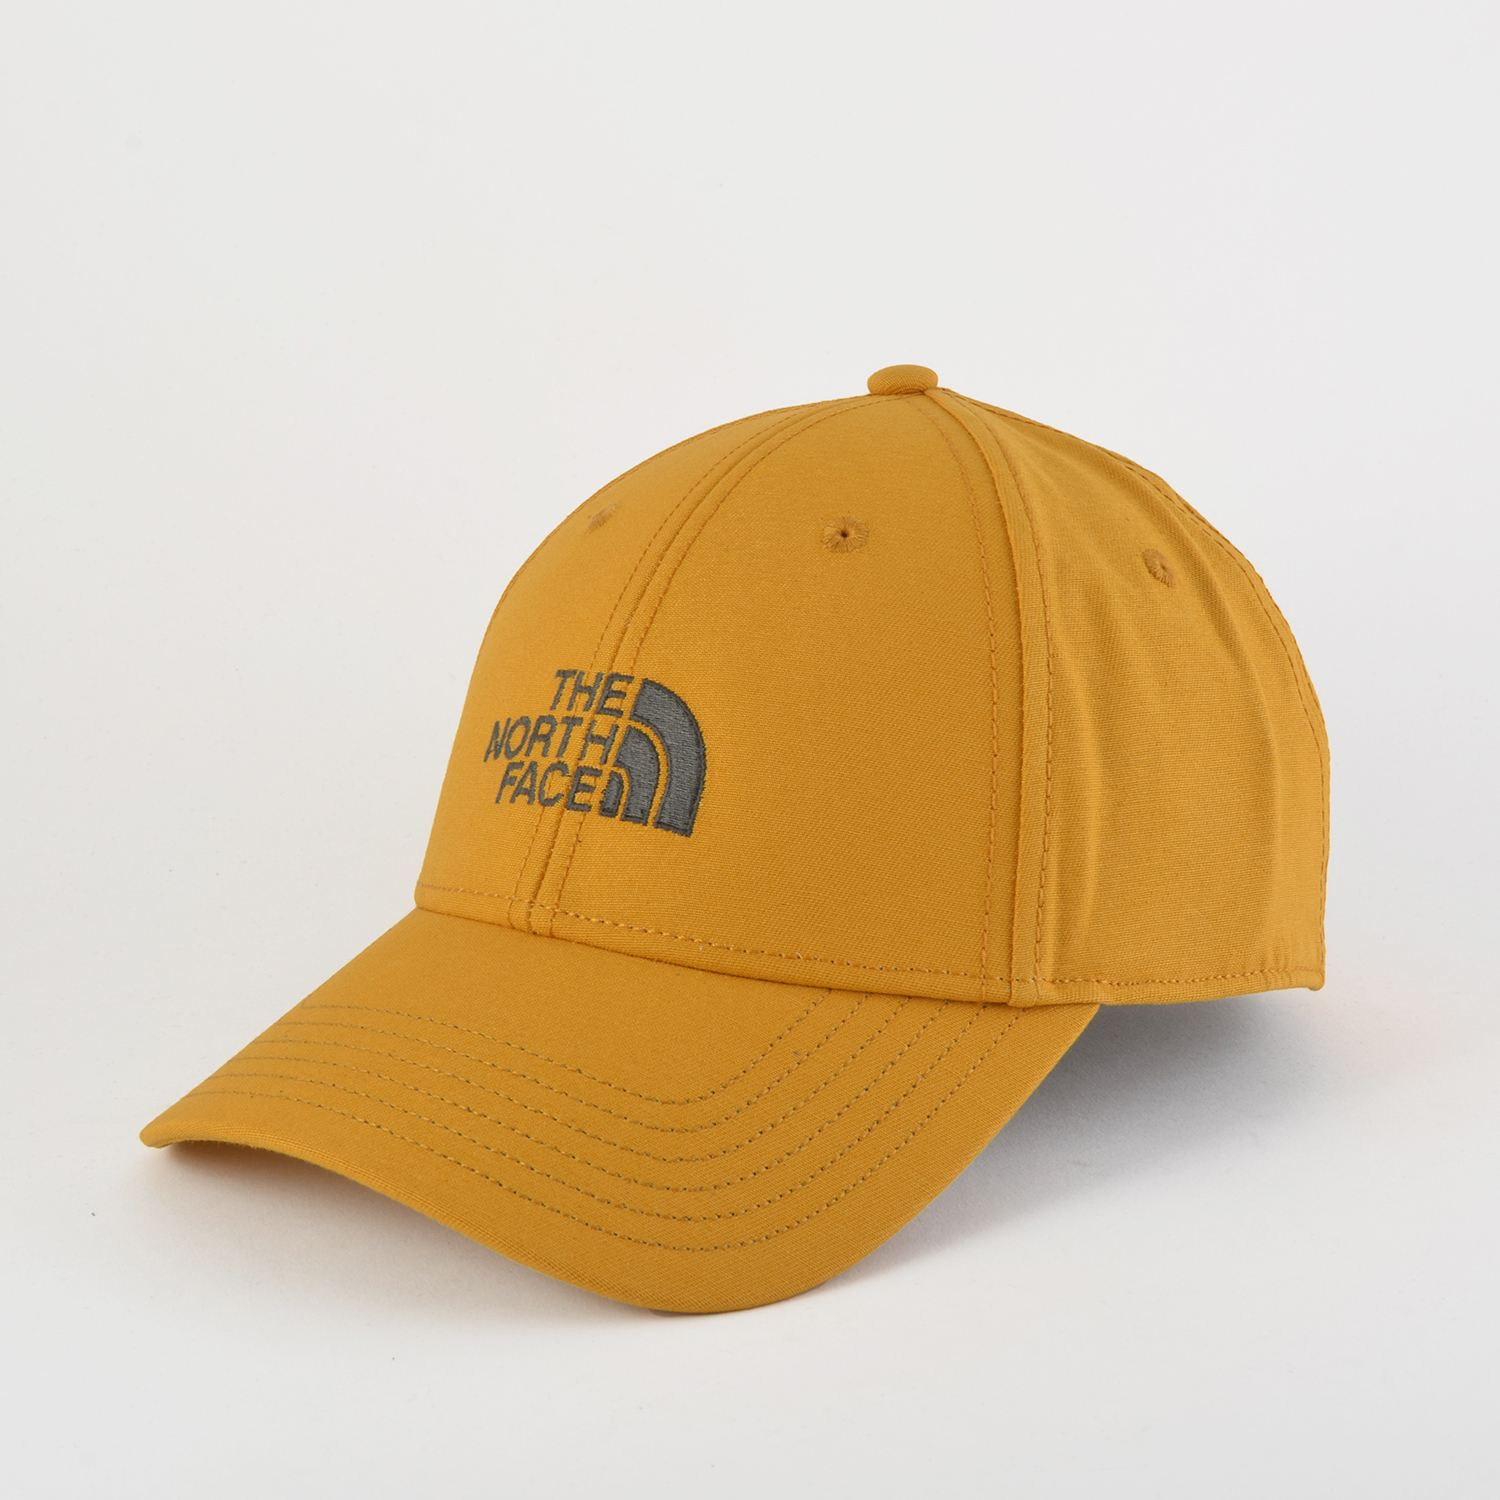 THE NORTH FACE 66 CLASSIC HAT CITRINE YELLOW/ (9000027933_38515)